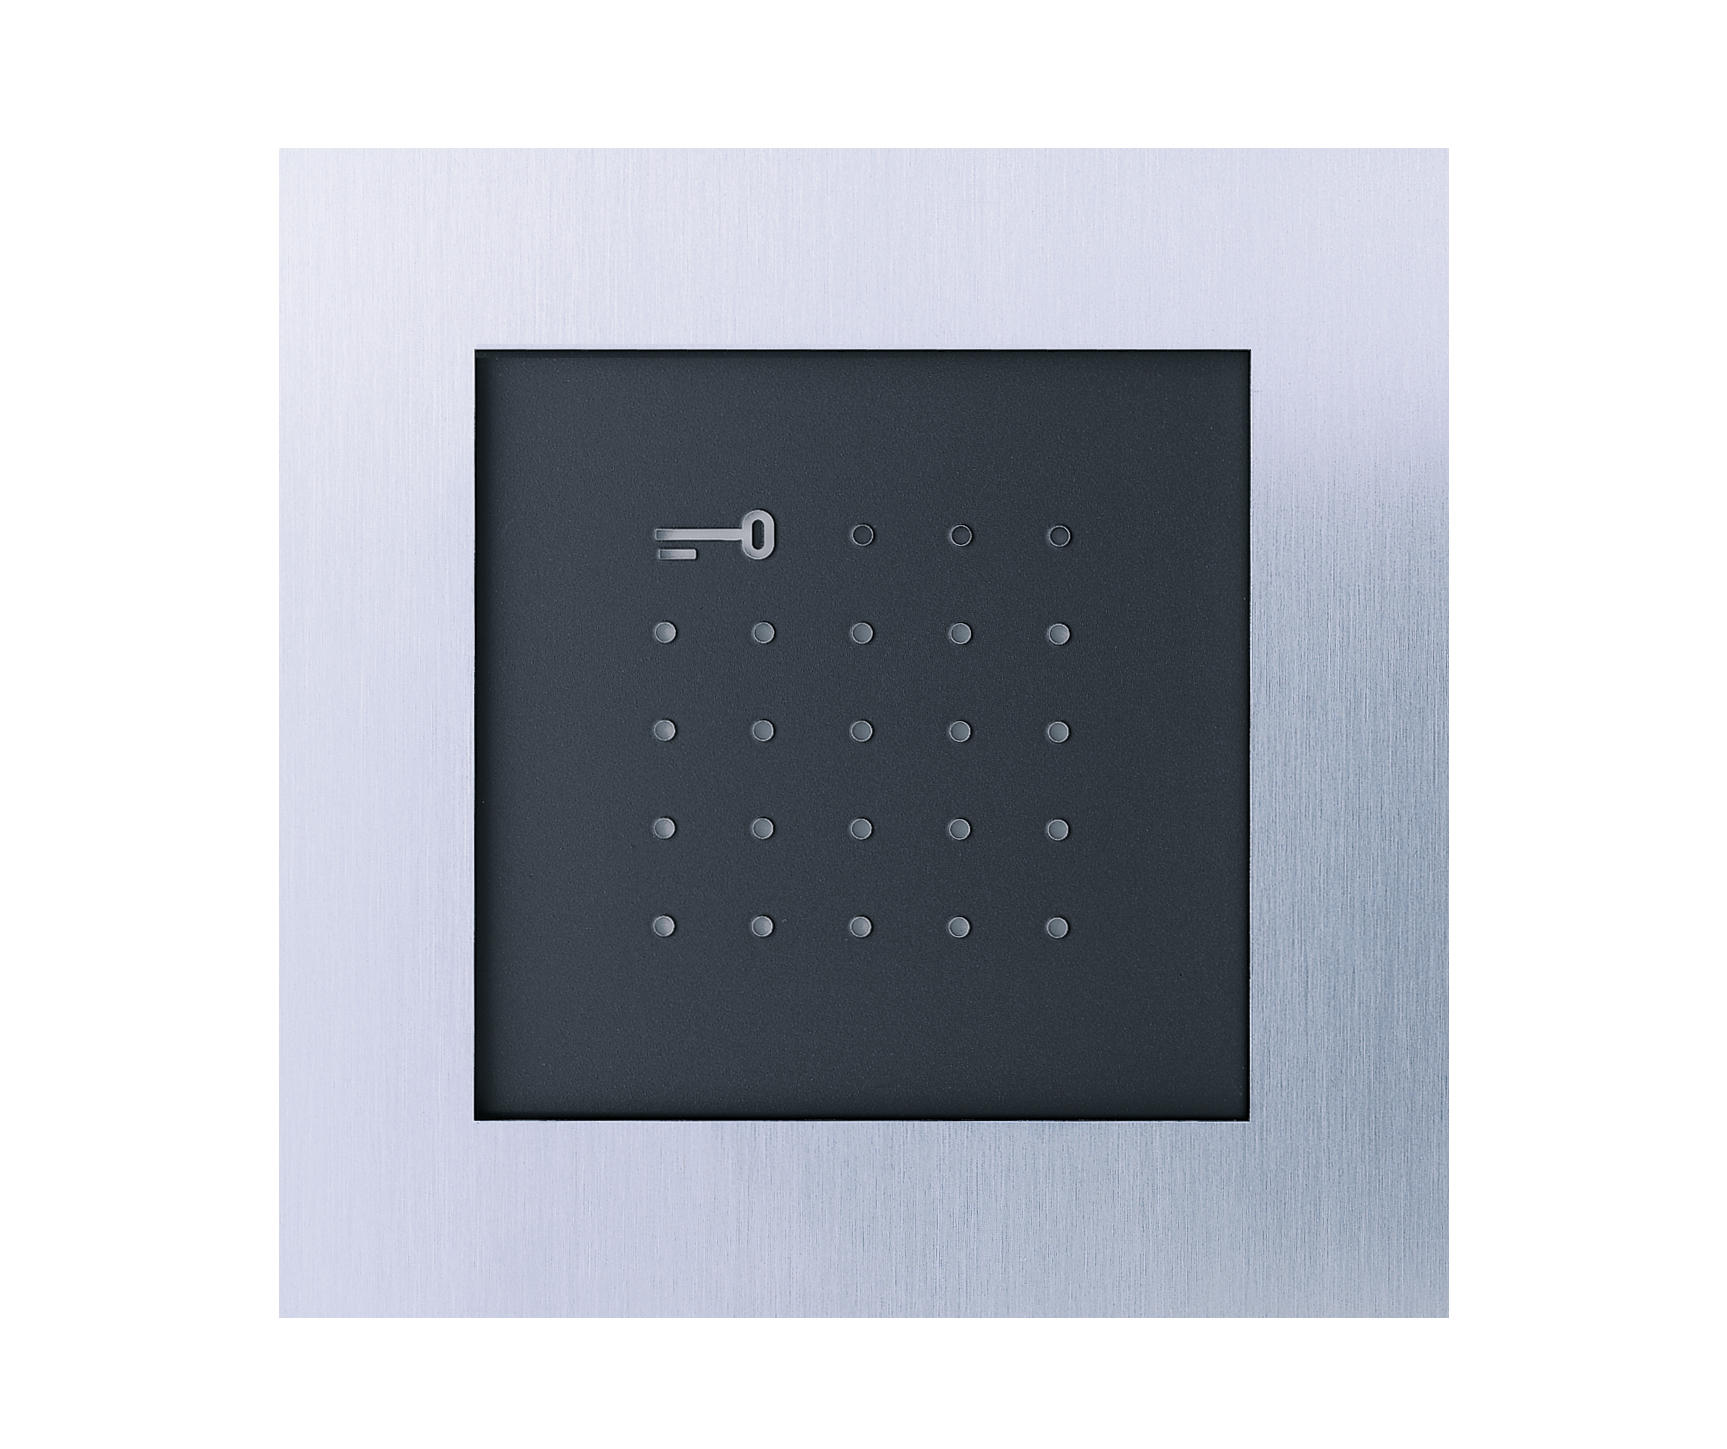 siedle steel electronic key leser electronic key von siedle architonic. Black Bedroom Furniture Sets. Home Design Ideas